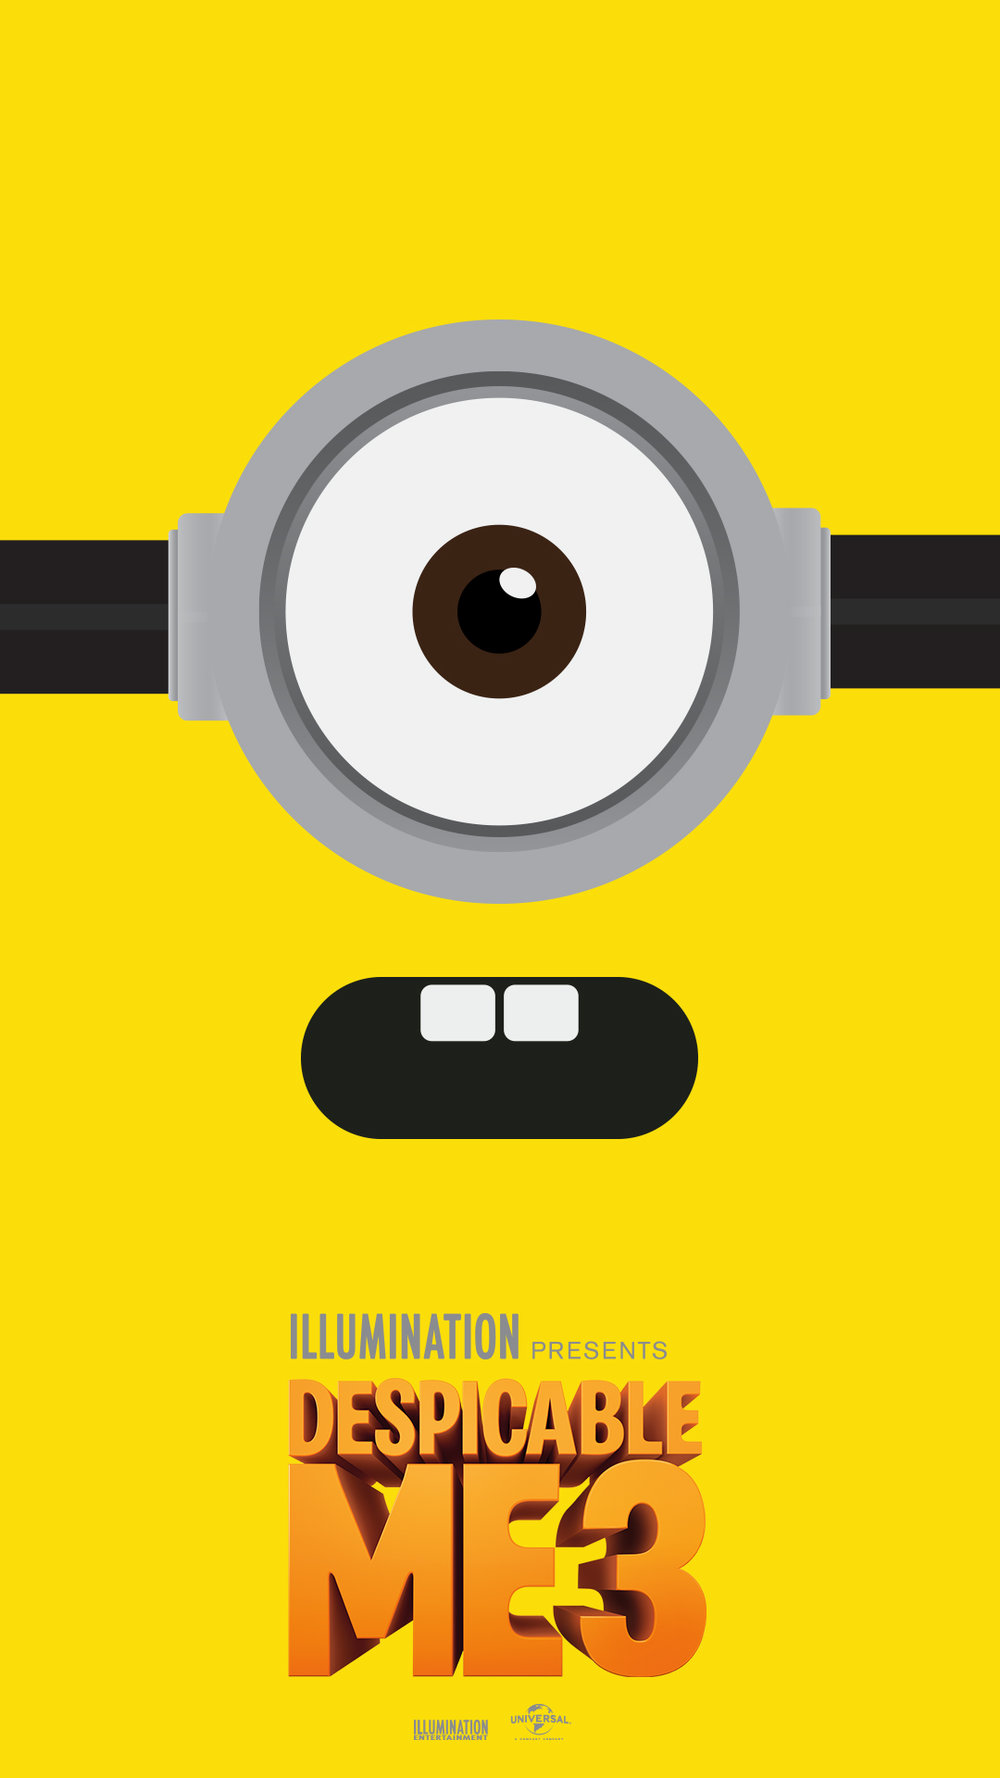 Zedge_Wallpaper_DespicableMe3_09_1080x1920.jpg